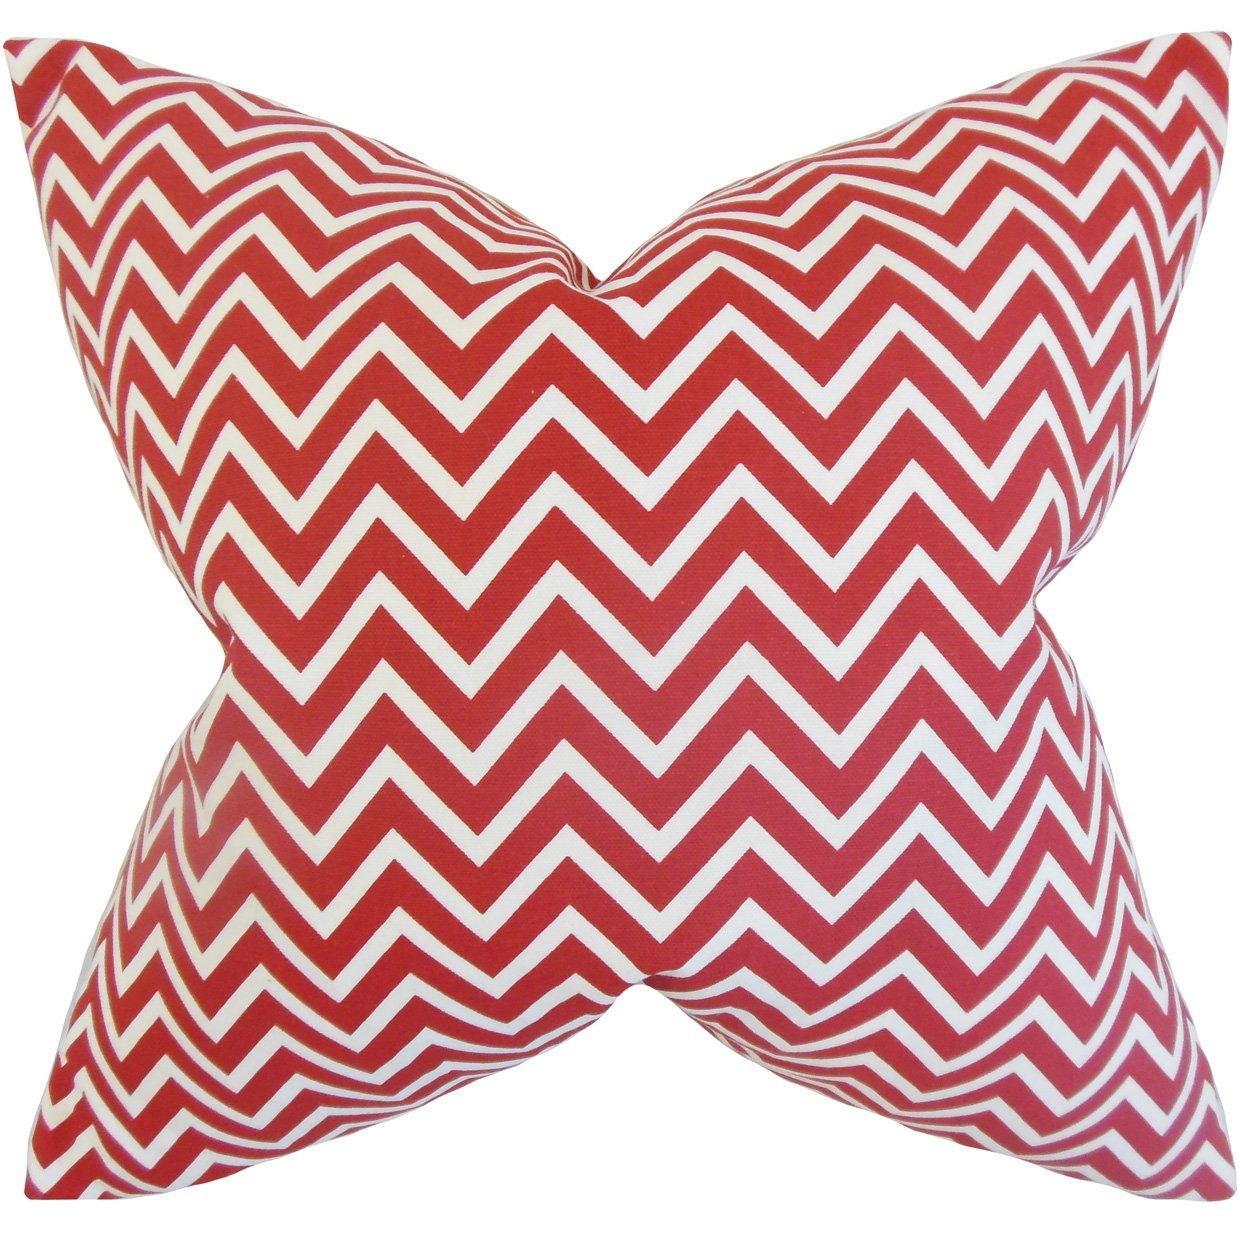 Cotton Chevron Contemporary Throw Pillow Cover